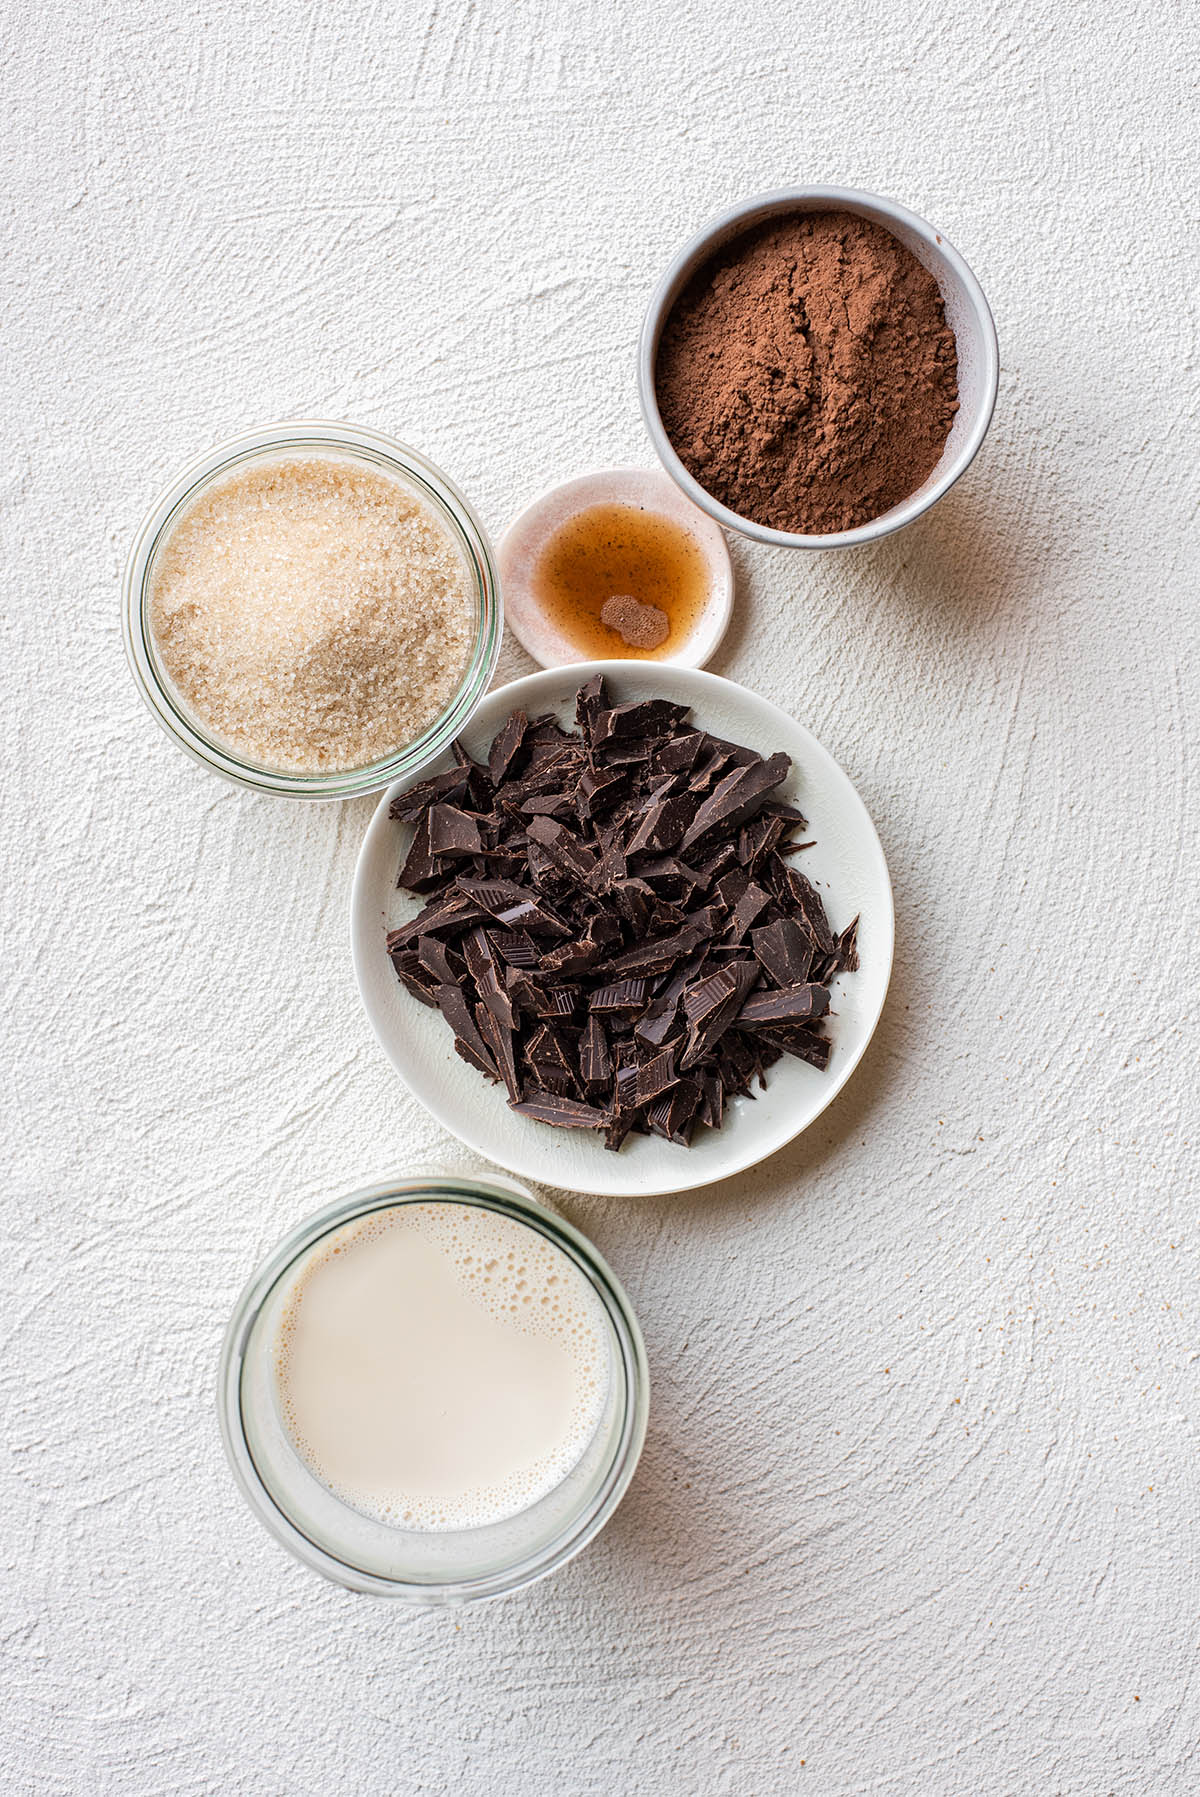 Ingredients to make vegan sherbet with dark chocolate.